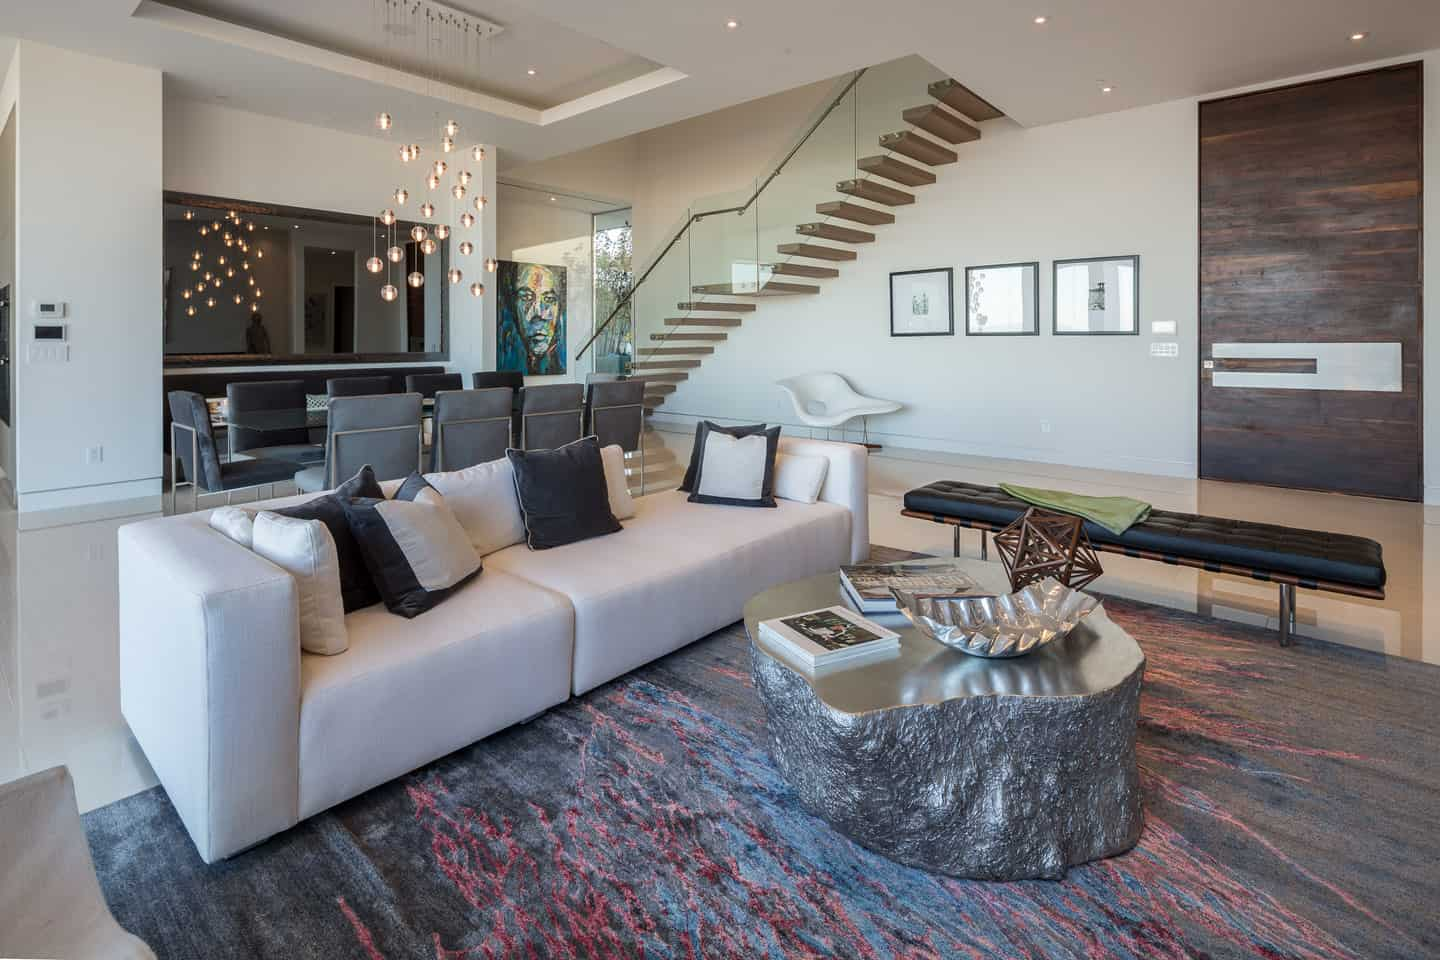 Architecture-Contemporary-Residence-Noesis Group-05-1 Kindesign